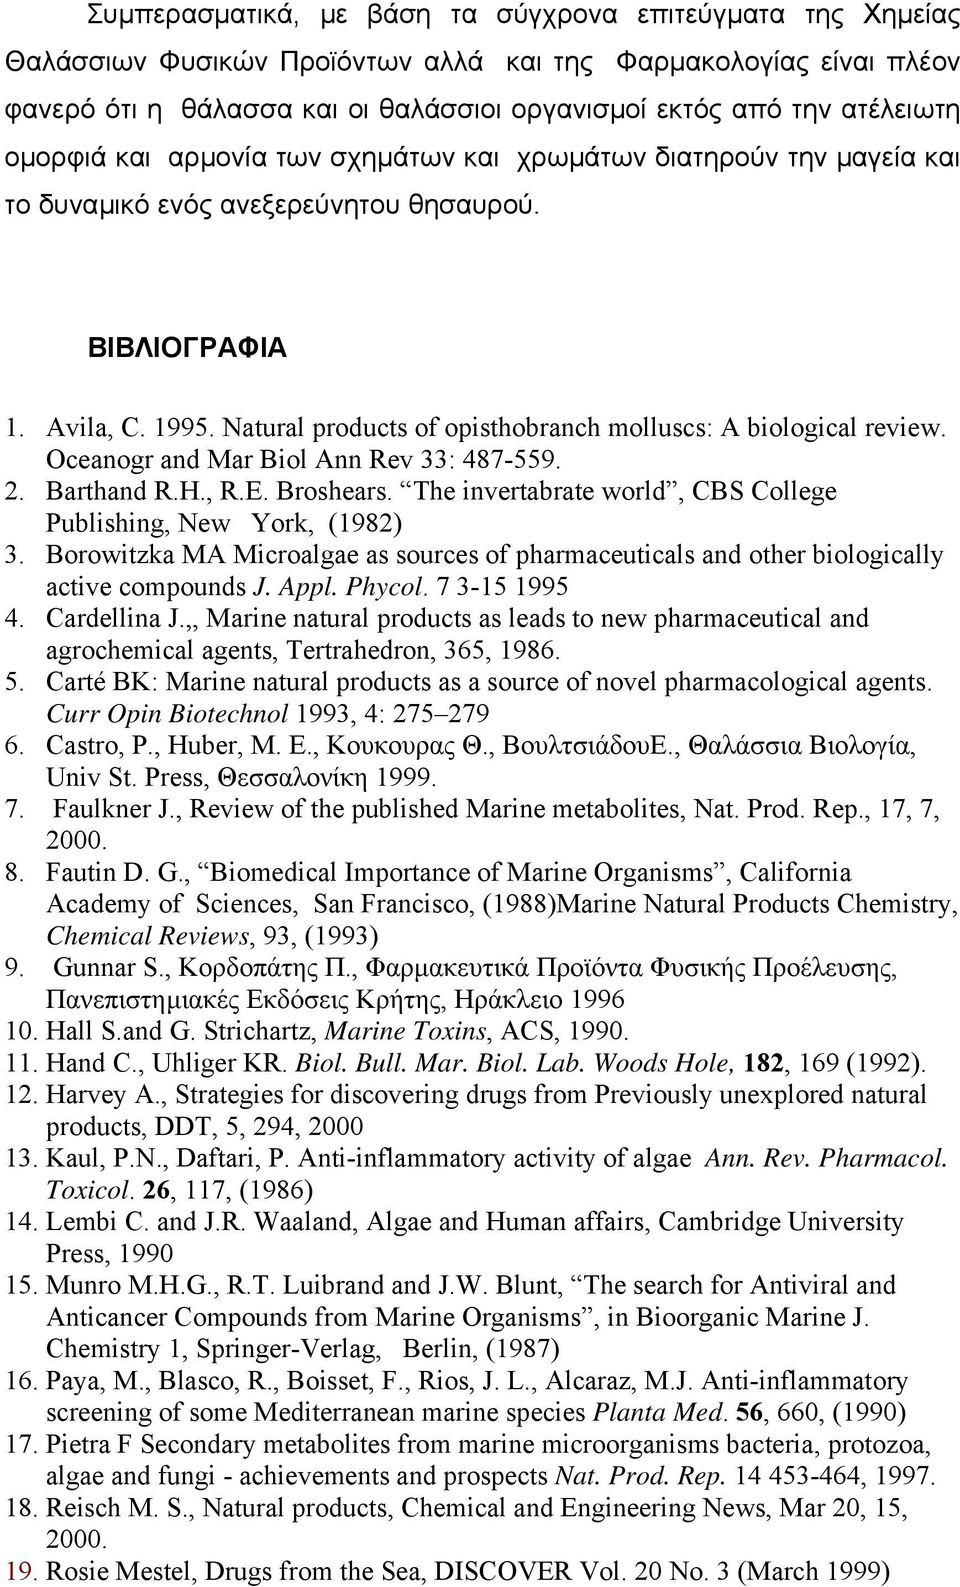 atural products of opisthobranch molluscs: A biological review. ceanogr and Mar Biol Ann Rev 33: 487-559. 2. Barthand R.H., R.E. Broshears.